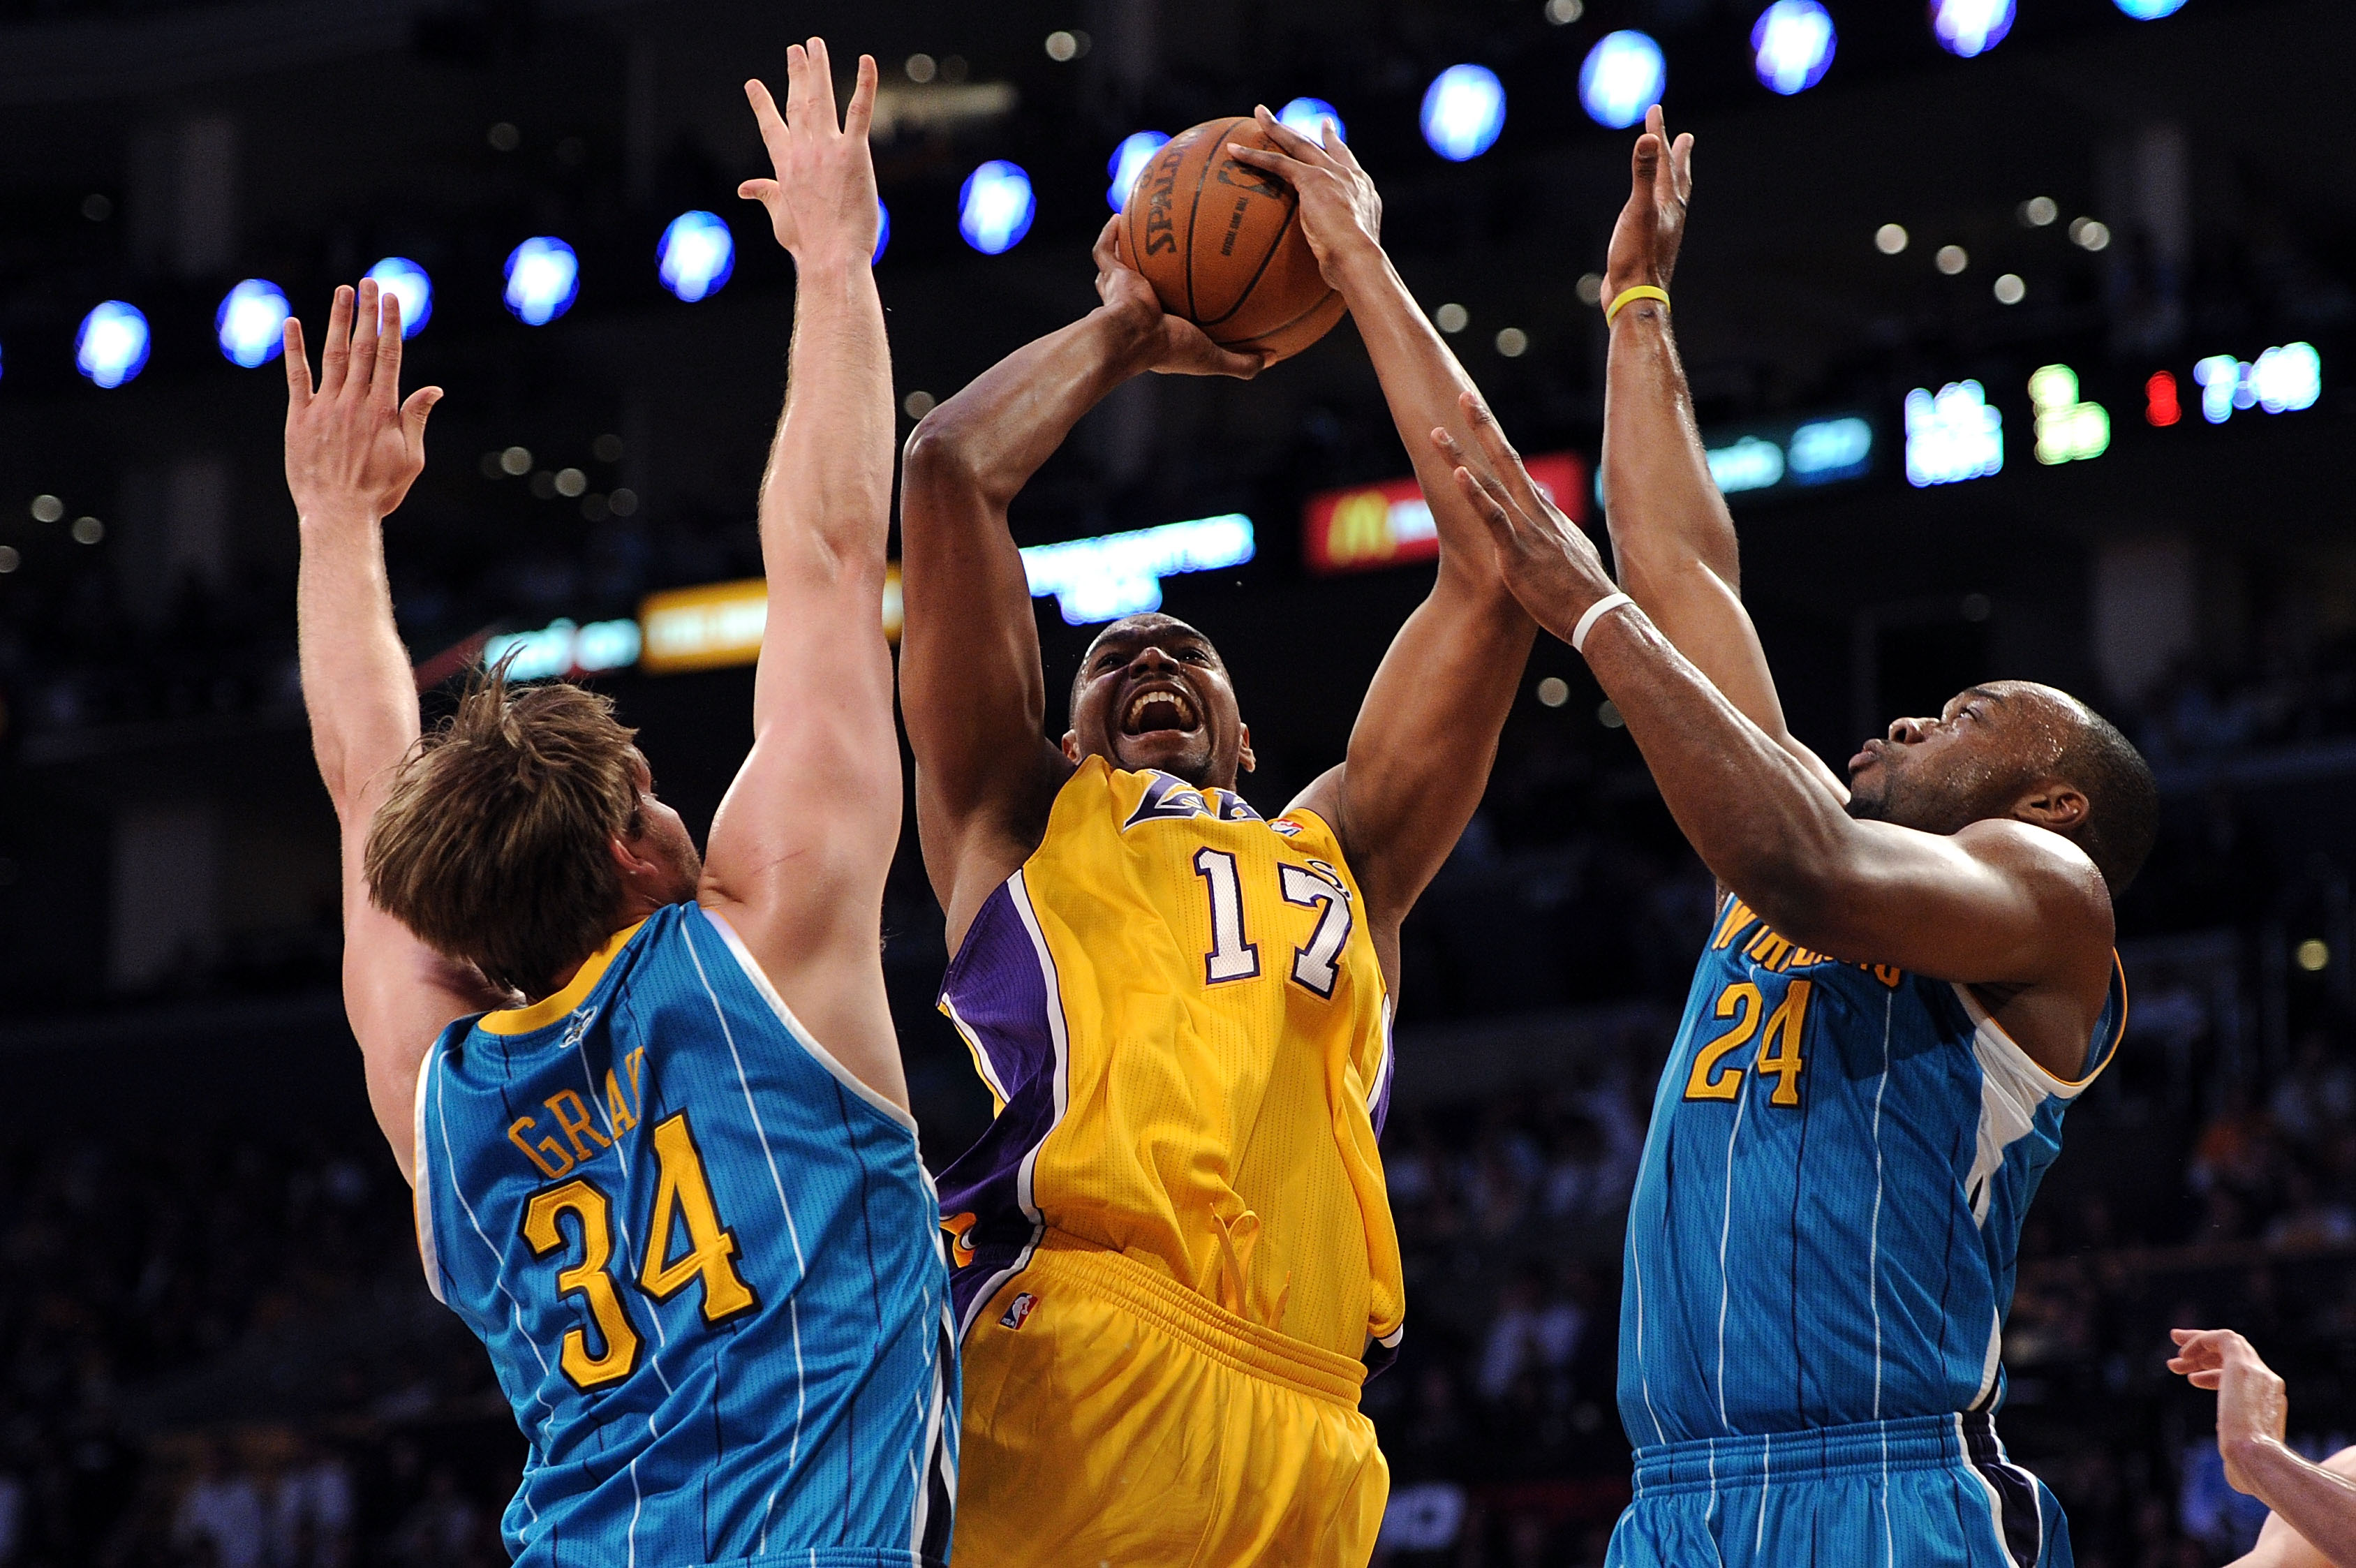 LOS ANGELES, CA - APRIL 20:  Andrew Bynum #17 of the Los Angeles Lakers shoots over Aaron Gray #34 and Carl Landry #24 of the New Orleans Hornets in the first quarter in Game Two of the Western Conference Quarterfinals in the 2011 NBA Playoffs on April 20